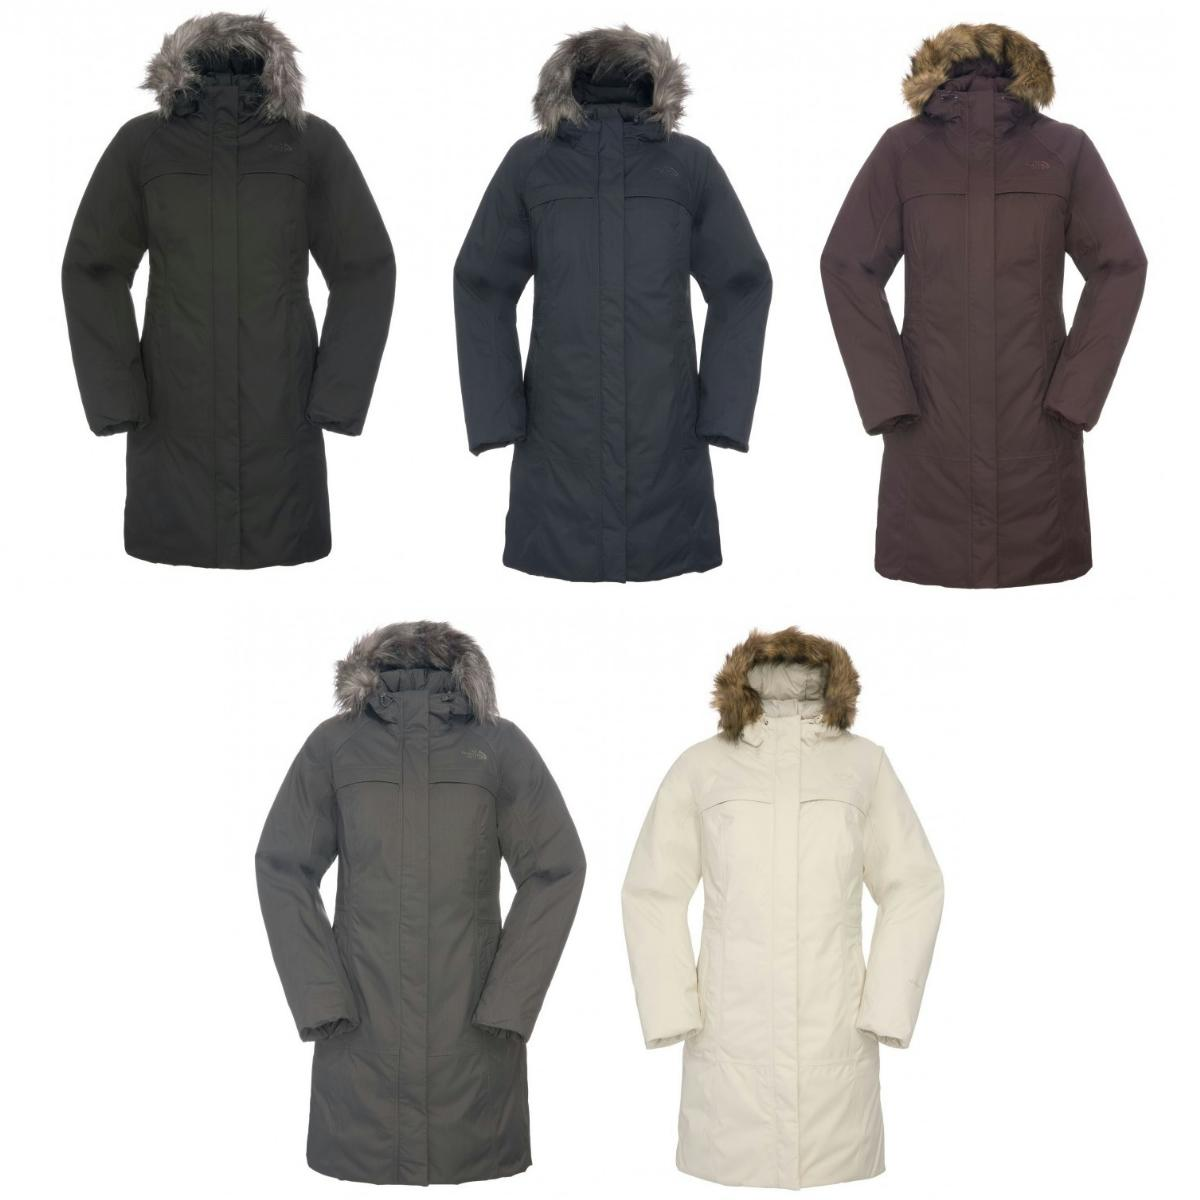 The-North-Face-Arctic-Parka-Damen-Mantel-Wintermantel-Winterjacke-Daunenmantel